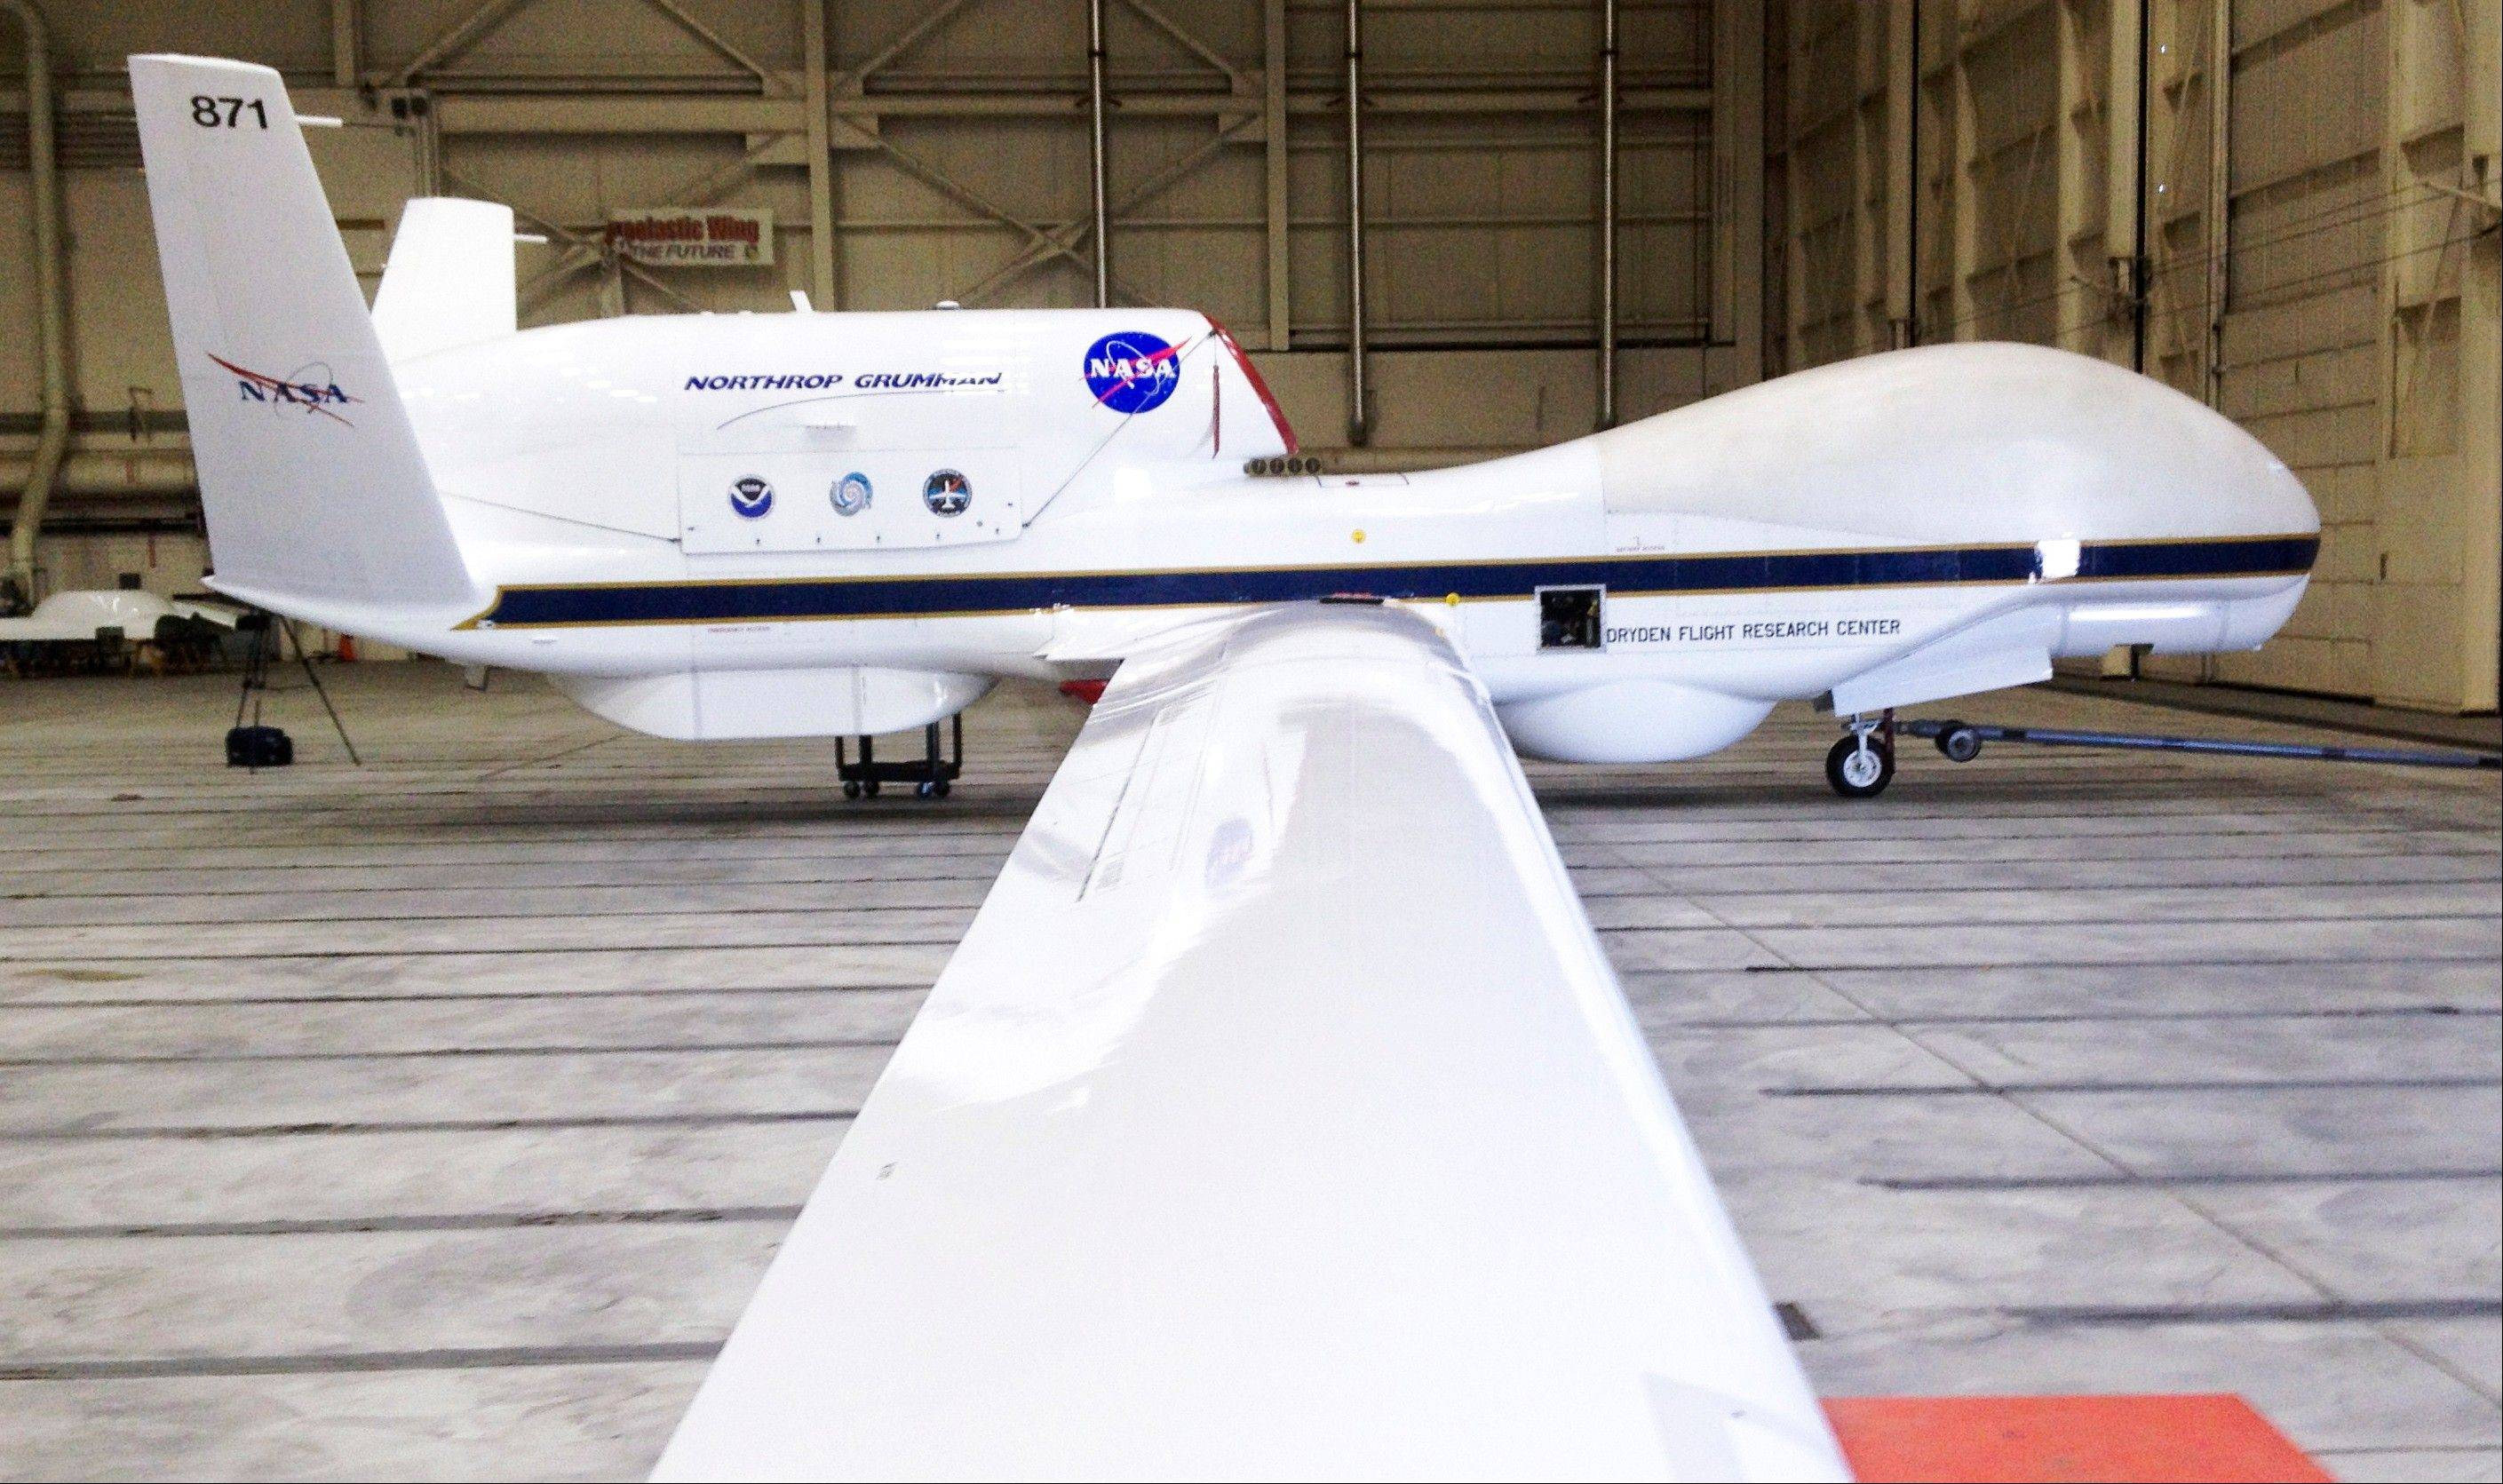 The Reaper drone, now known as a Global Hawk, is seen at Edwards Air Force Base in California. The Federal Aviation Administration announced six states on Monday that will develop test sites for drones, a critical next step for the march of the unmanned aircraft into U.S. skies.